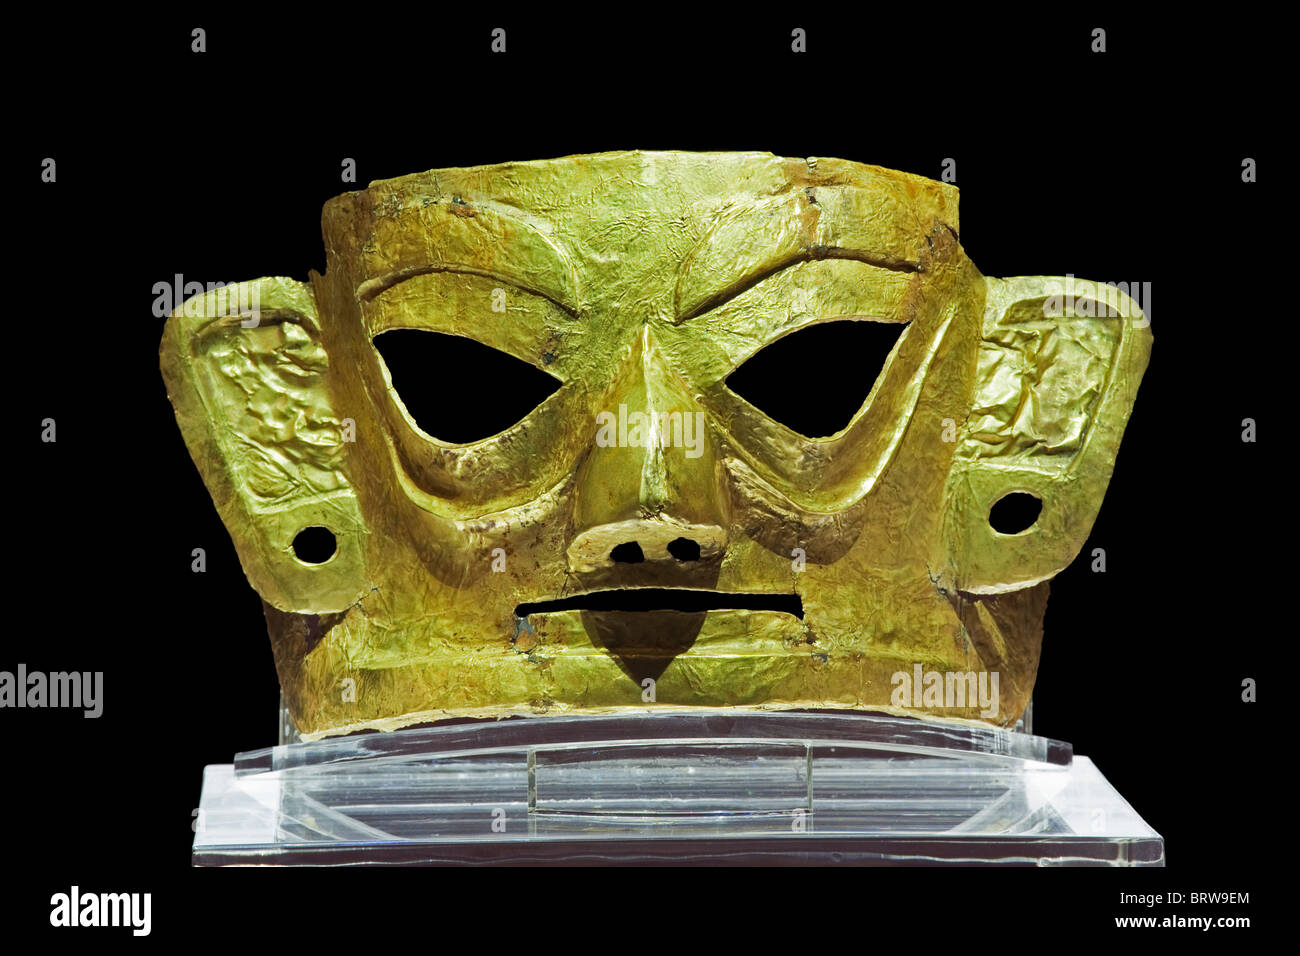 A golden mask found in the Jinsha Excavation Site in Chengdu China - Stock Image